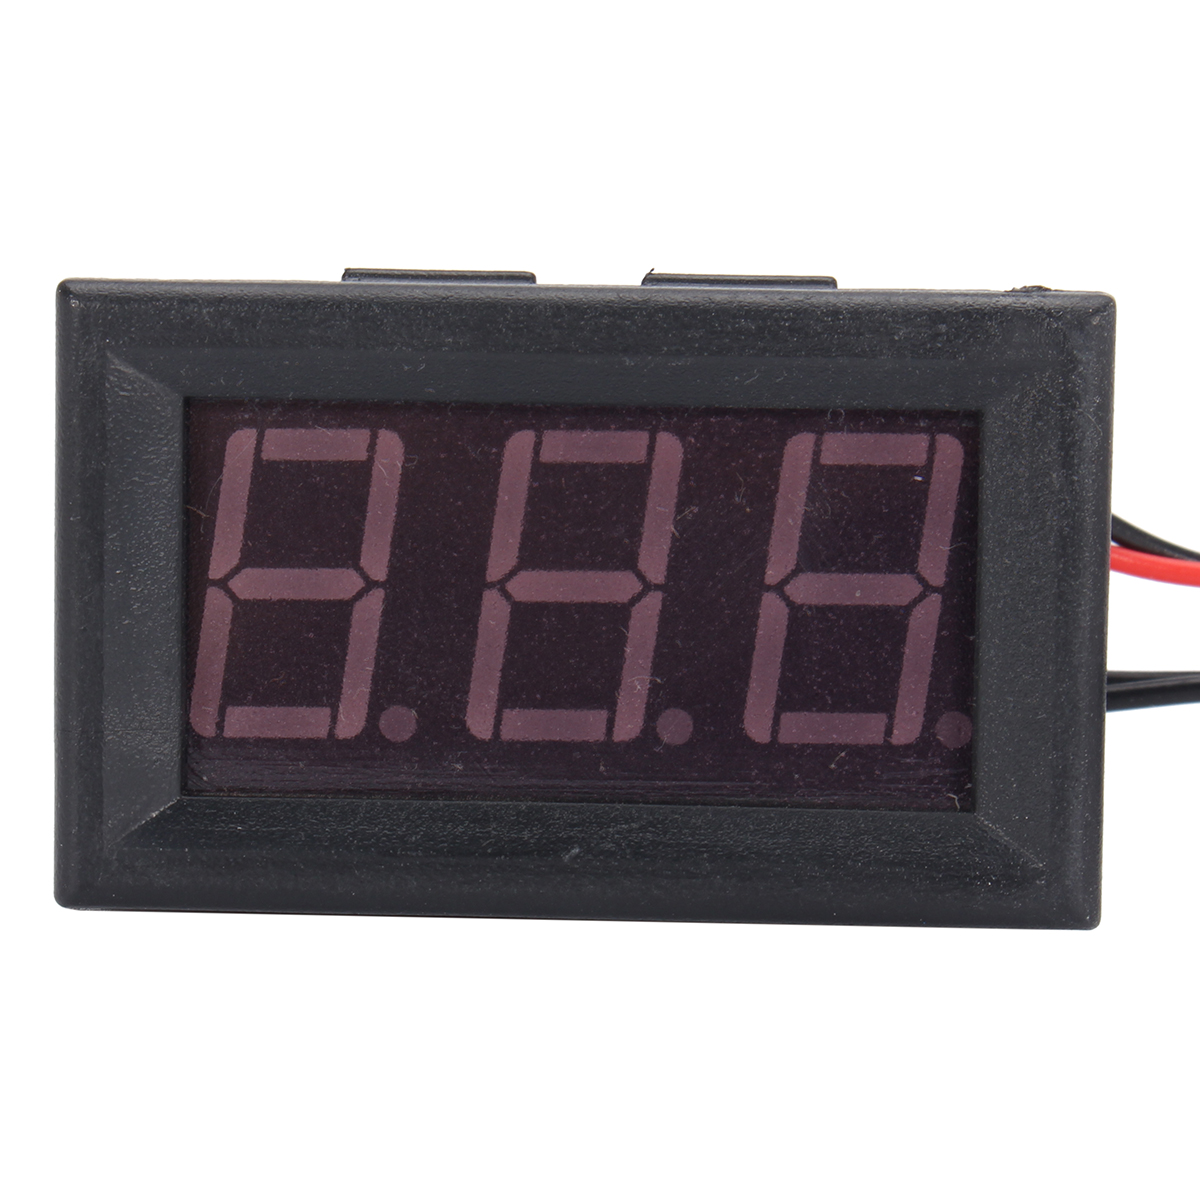 12V Red Digital Display Thermometer LED Waterproof Temperature Sensor Test Meter